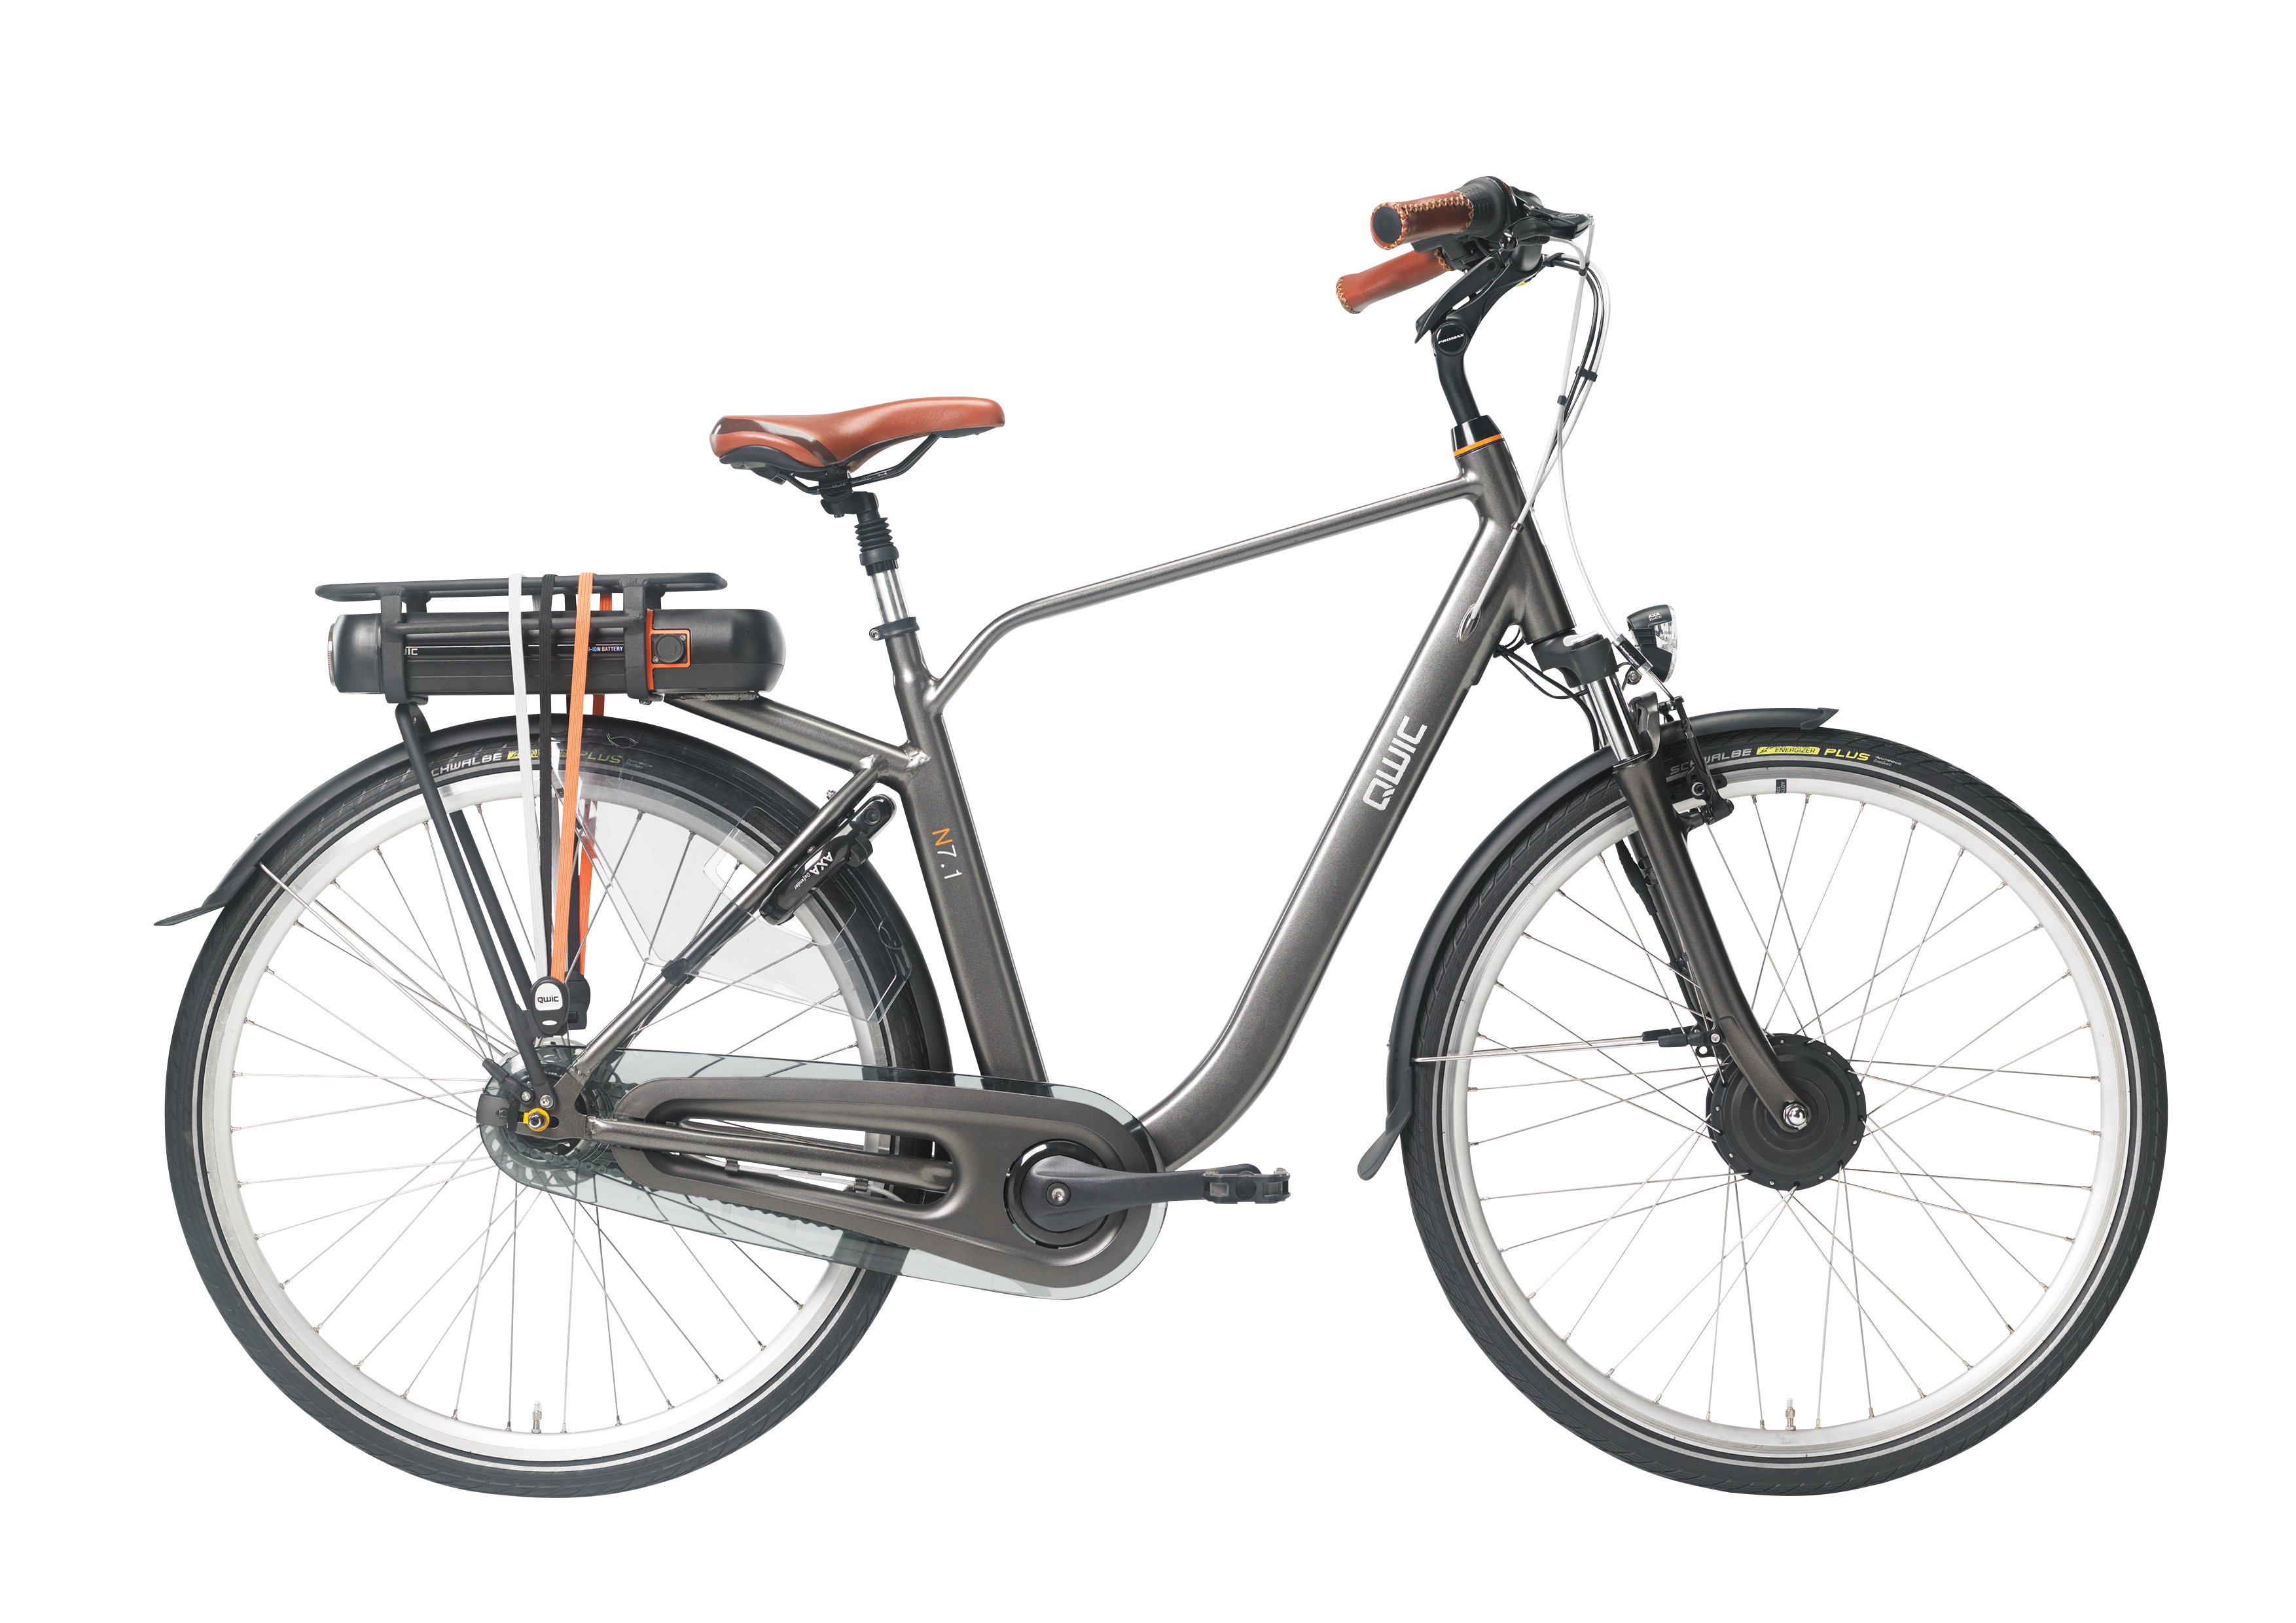 Qwic Premium Fn7 1 Awarded Best E Bike With Front Engine Qwic